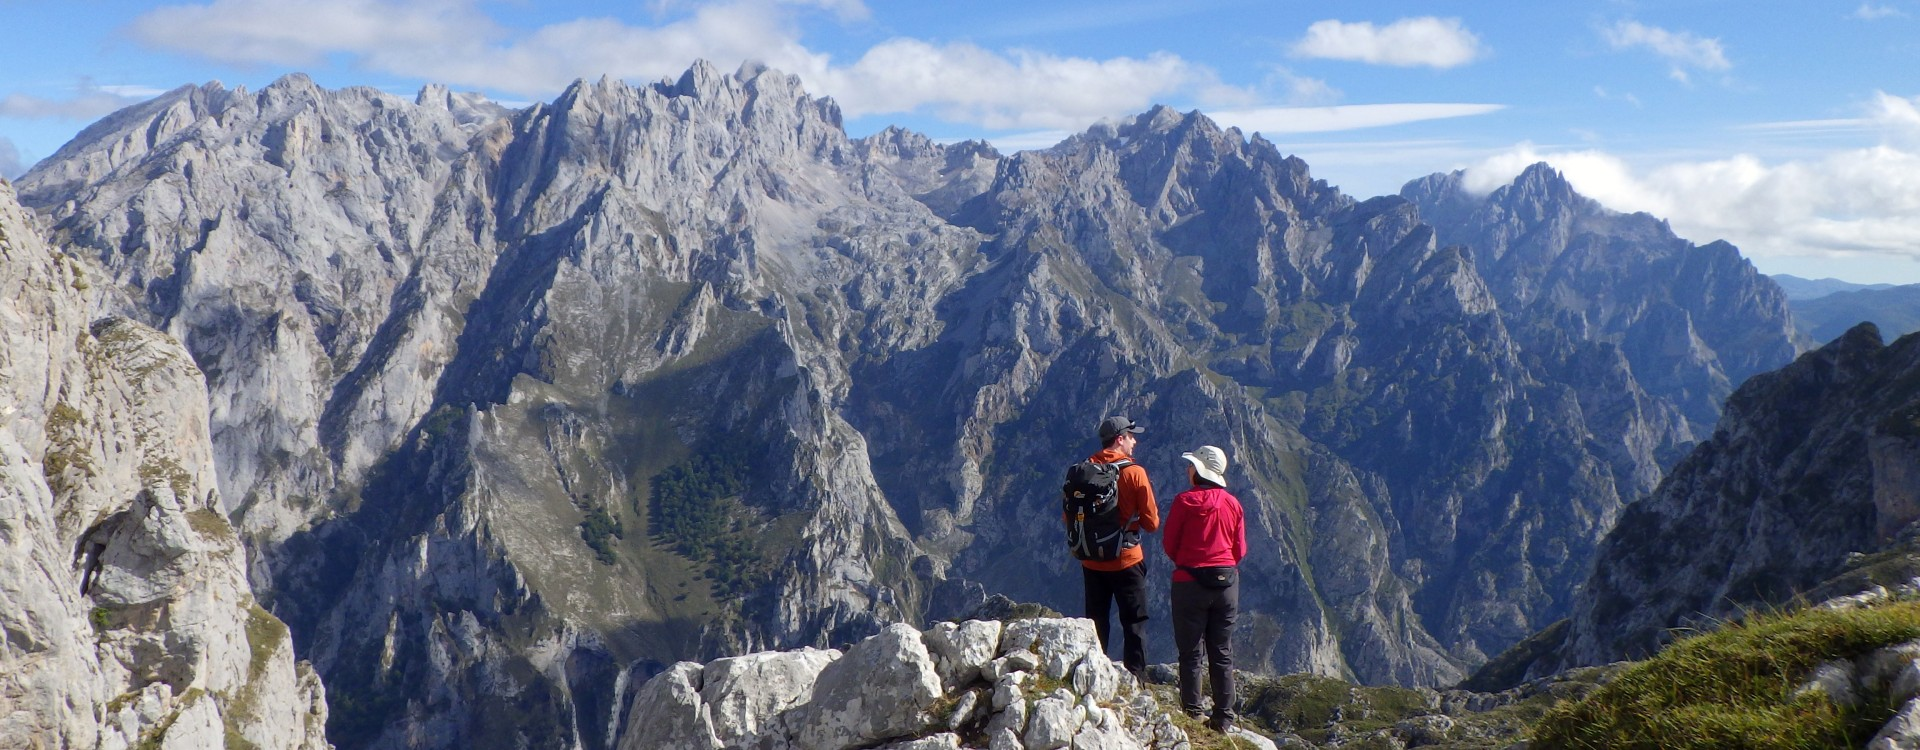 Walking the picos de europa, walking holidays in the country travels far towards the